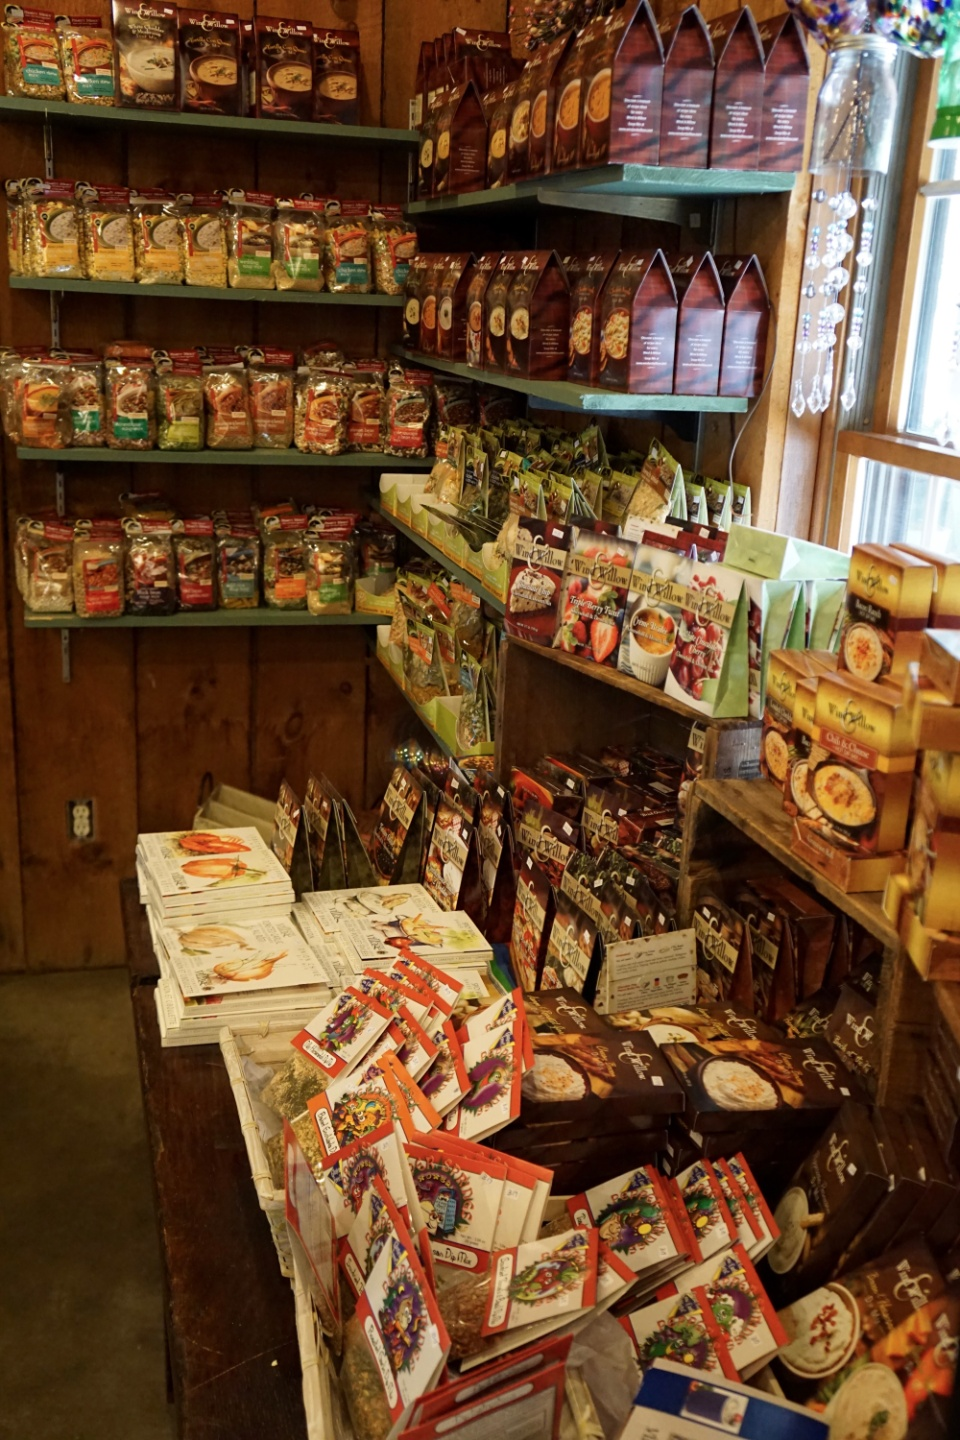 Country Wagon Produce gift shop